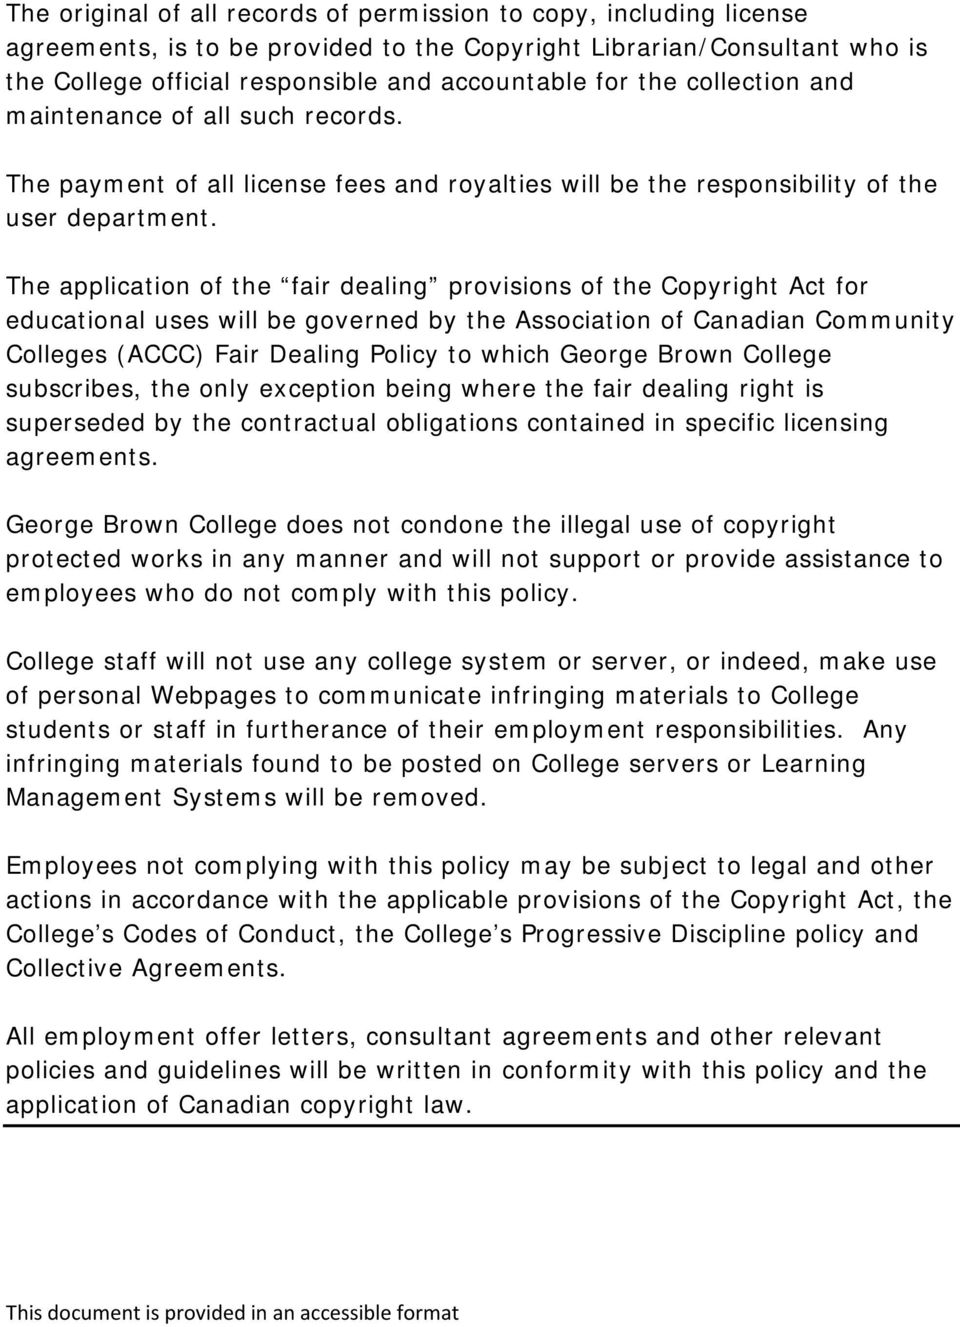 The application of the fair dealing provisions of the Copyright Act for educational uses will be governed by the Association of Canadian Community Colleges (ACCC) Fair Dealing Policy to which George